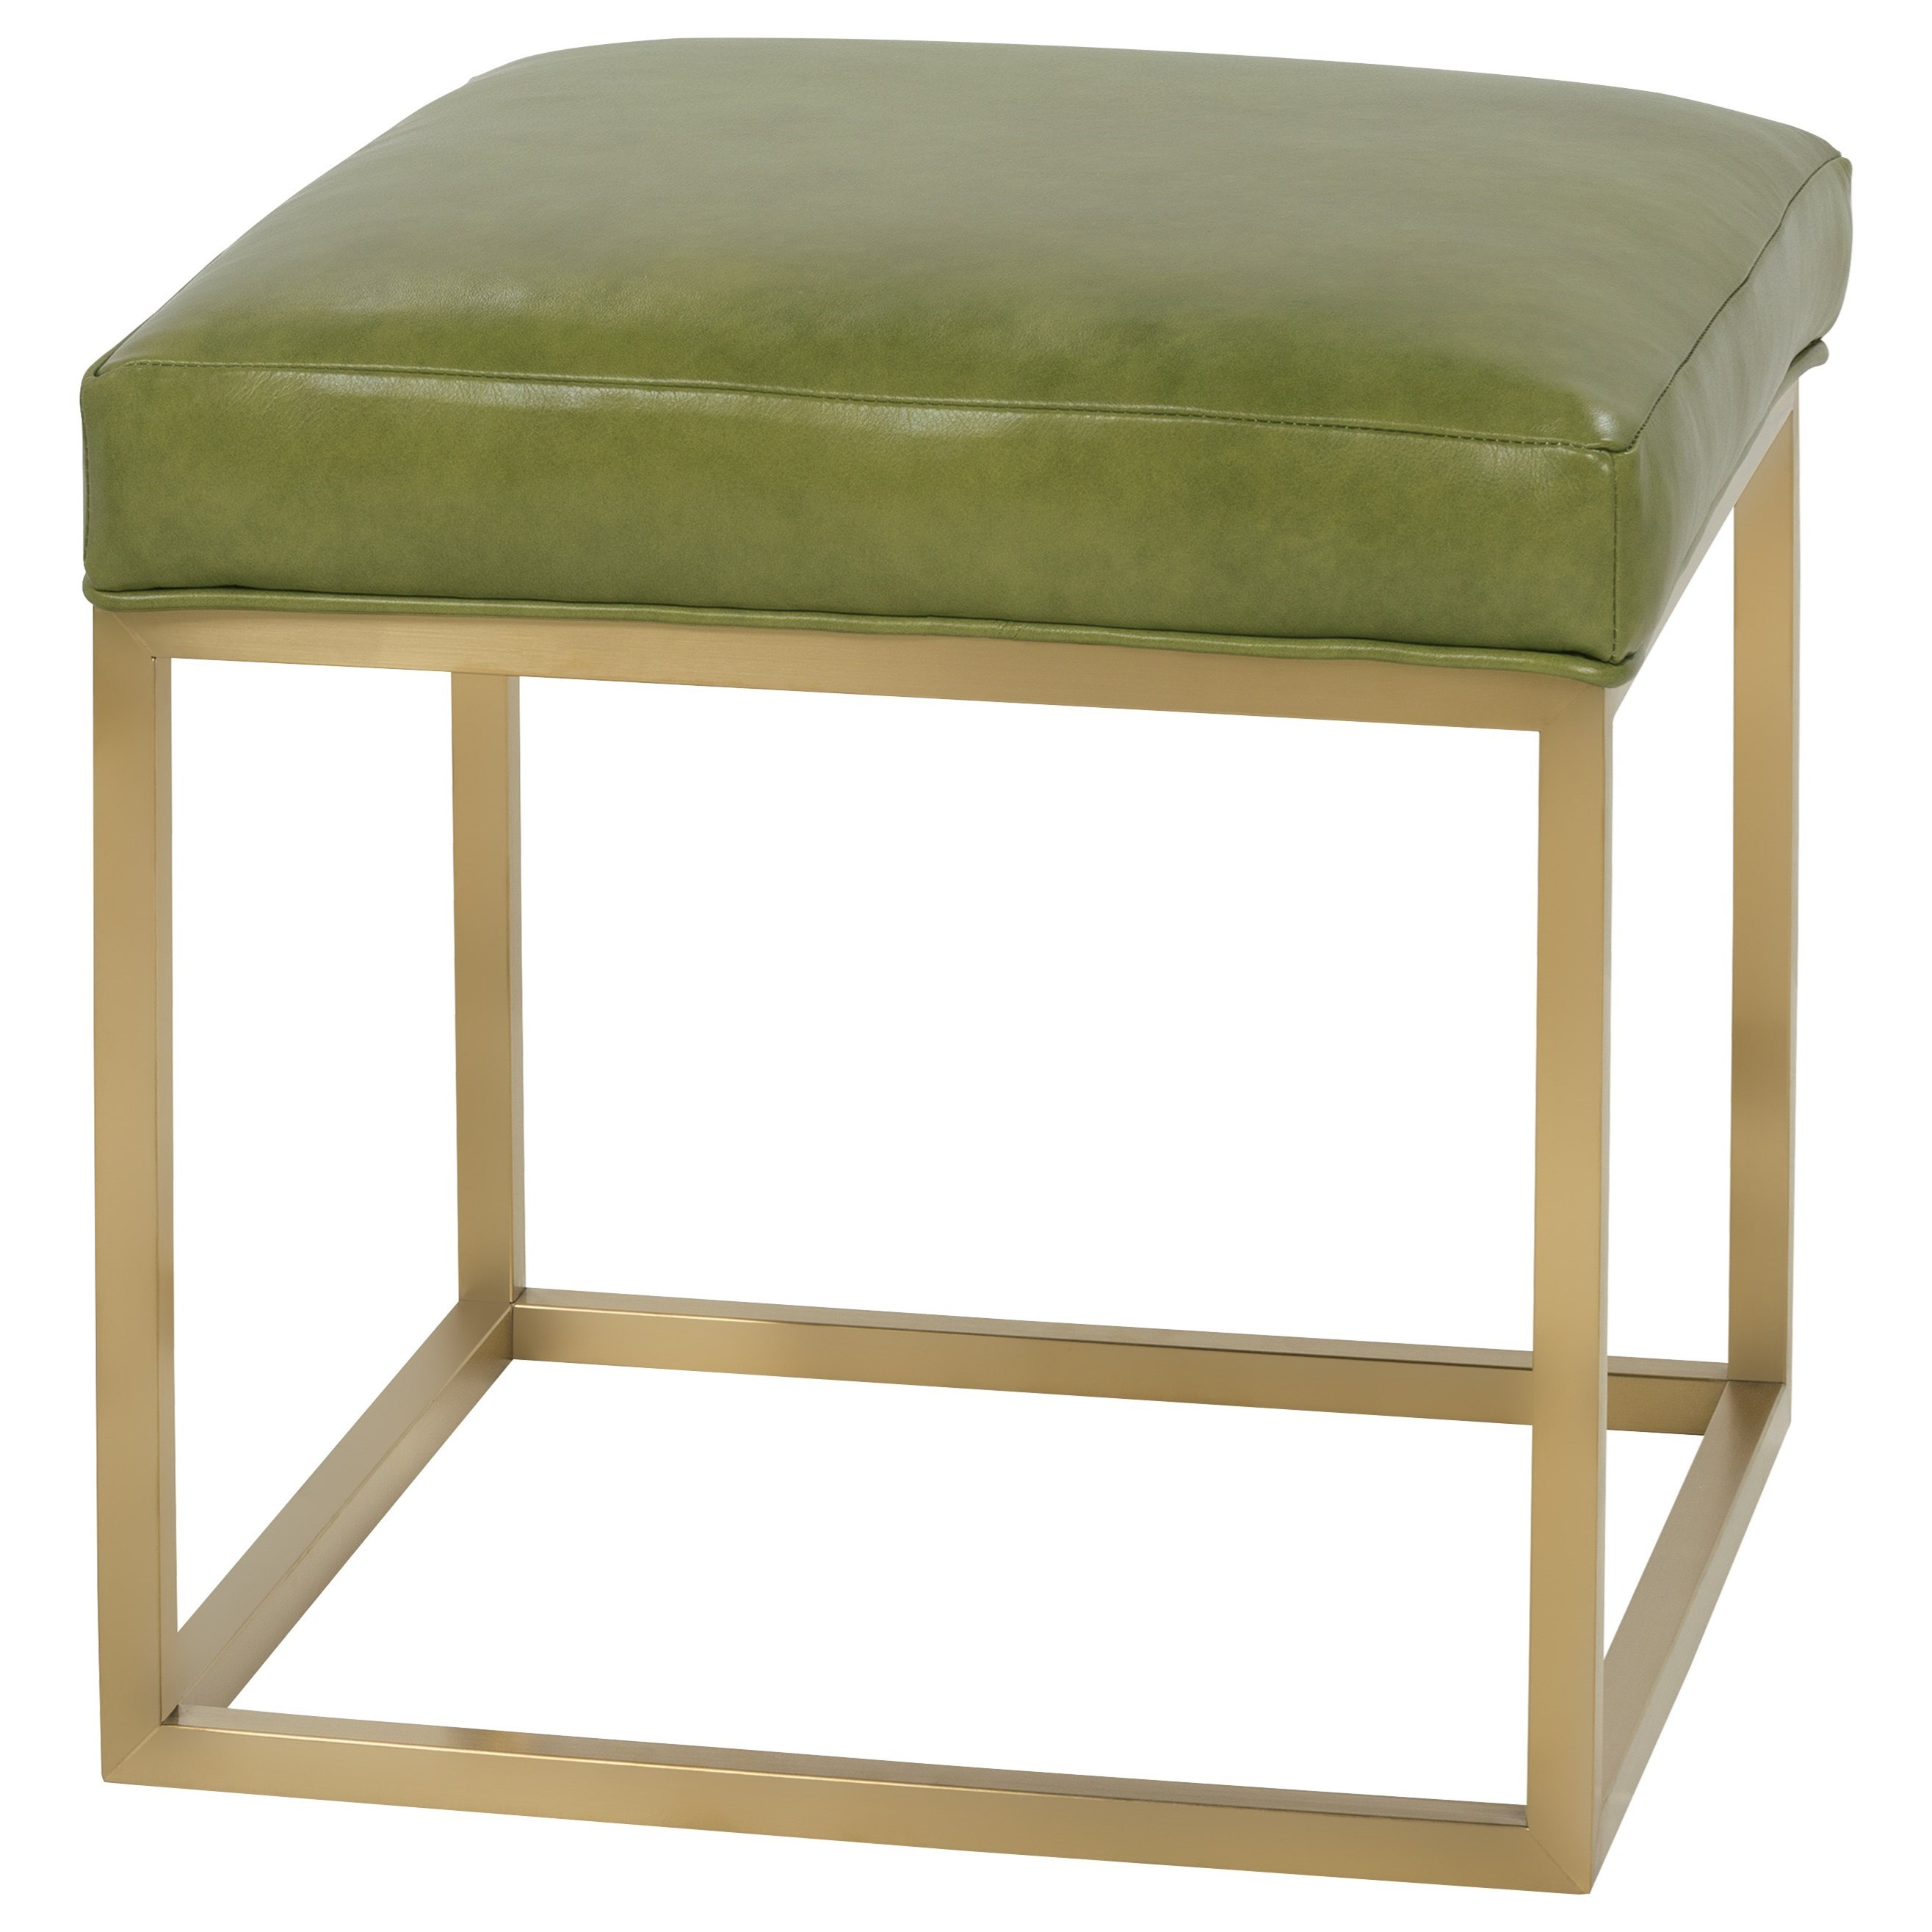 Percy Contemporary Accent Cube Ottoman by Rowe at Baer's Furniture